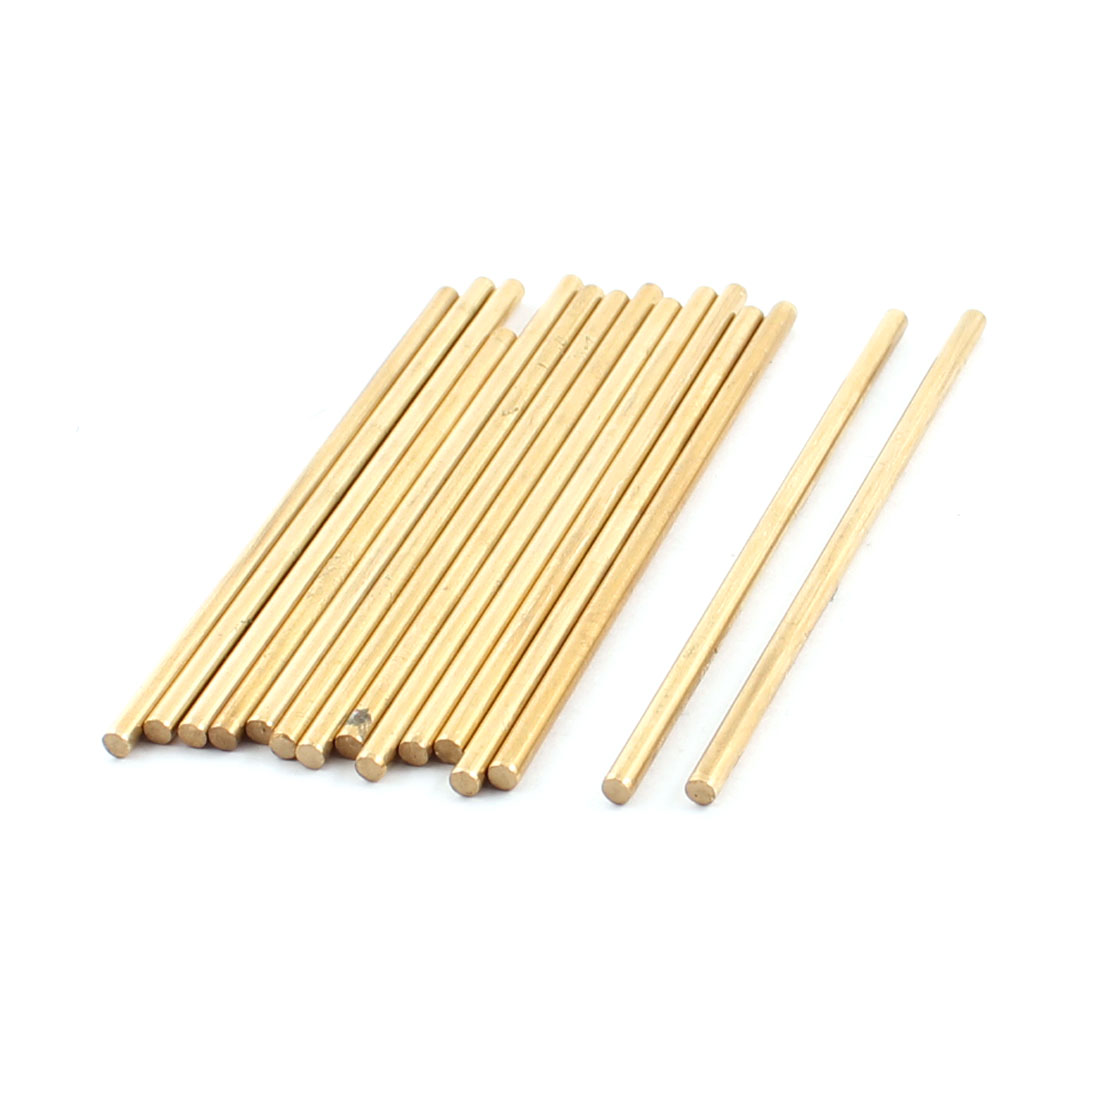 15Pcs 3mm Dia 80mm Length Brass Round Rod Shaft for RC Toy Car